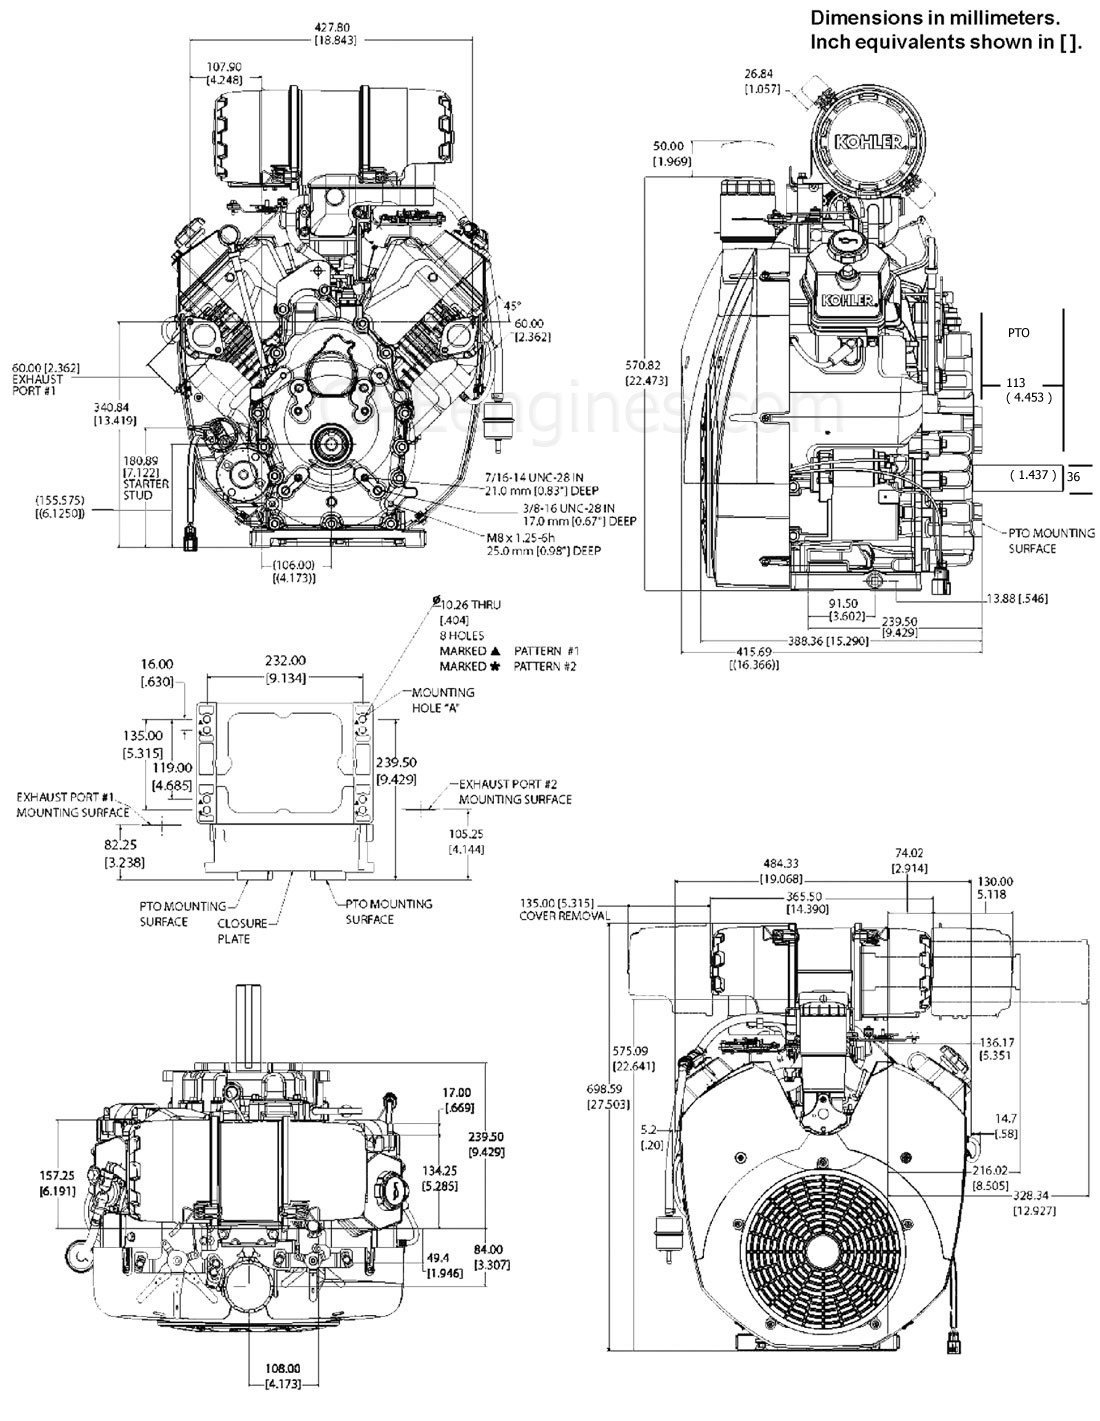 CH980_drawings ch940 ch960 ch980 ch1000 drawings kohler engines and parts store Kohler Wiring Diagram Manual at gsmx.co